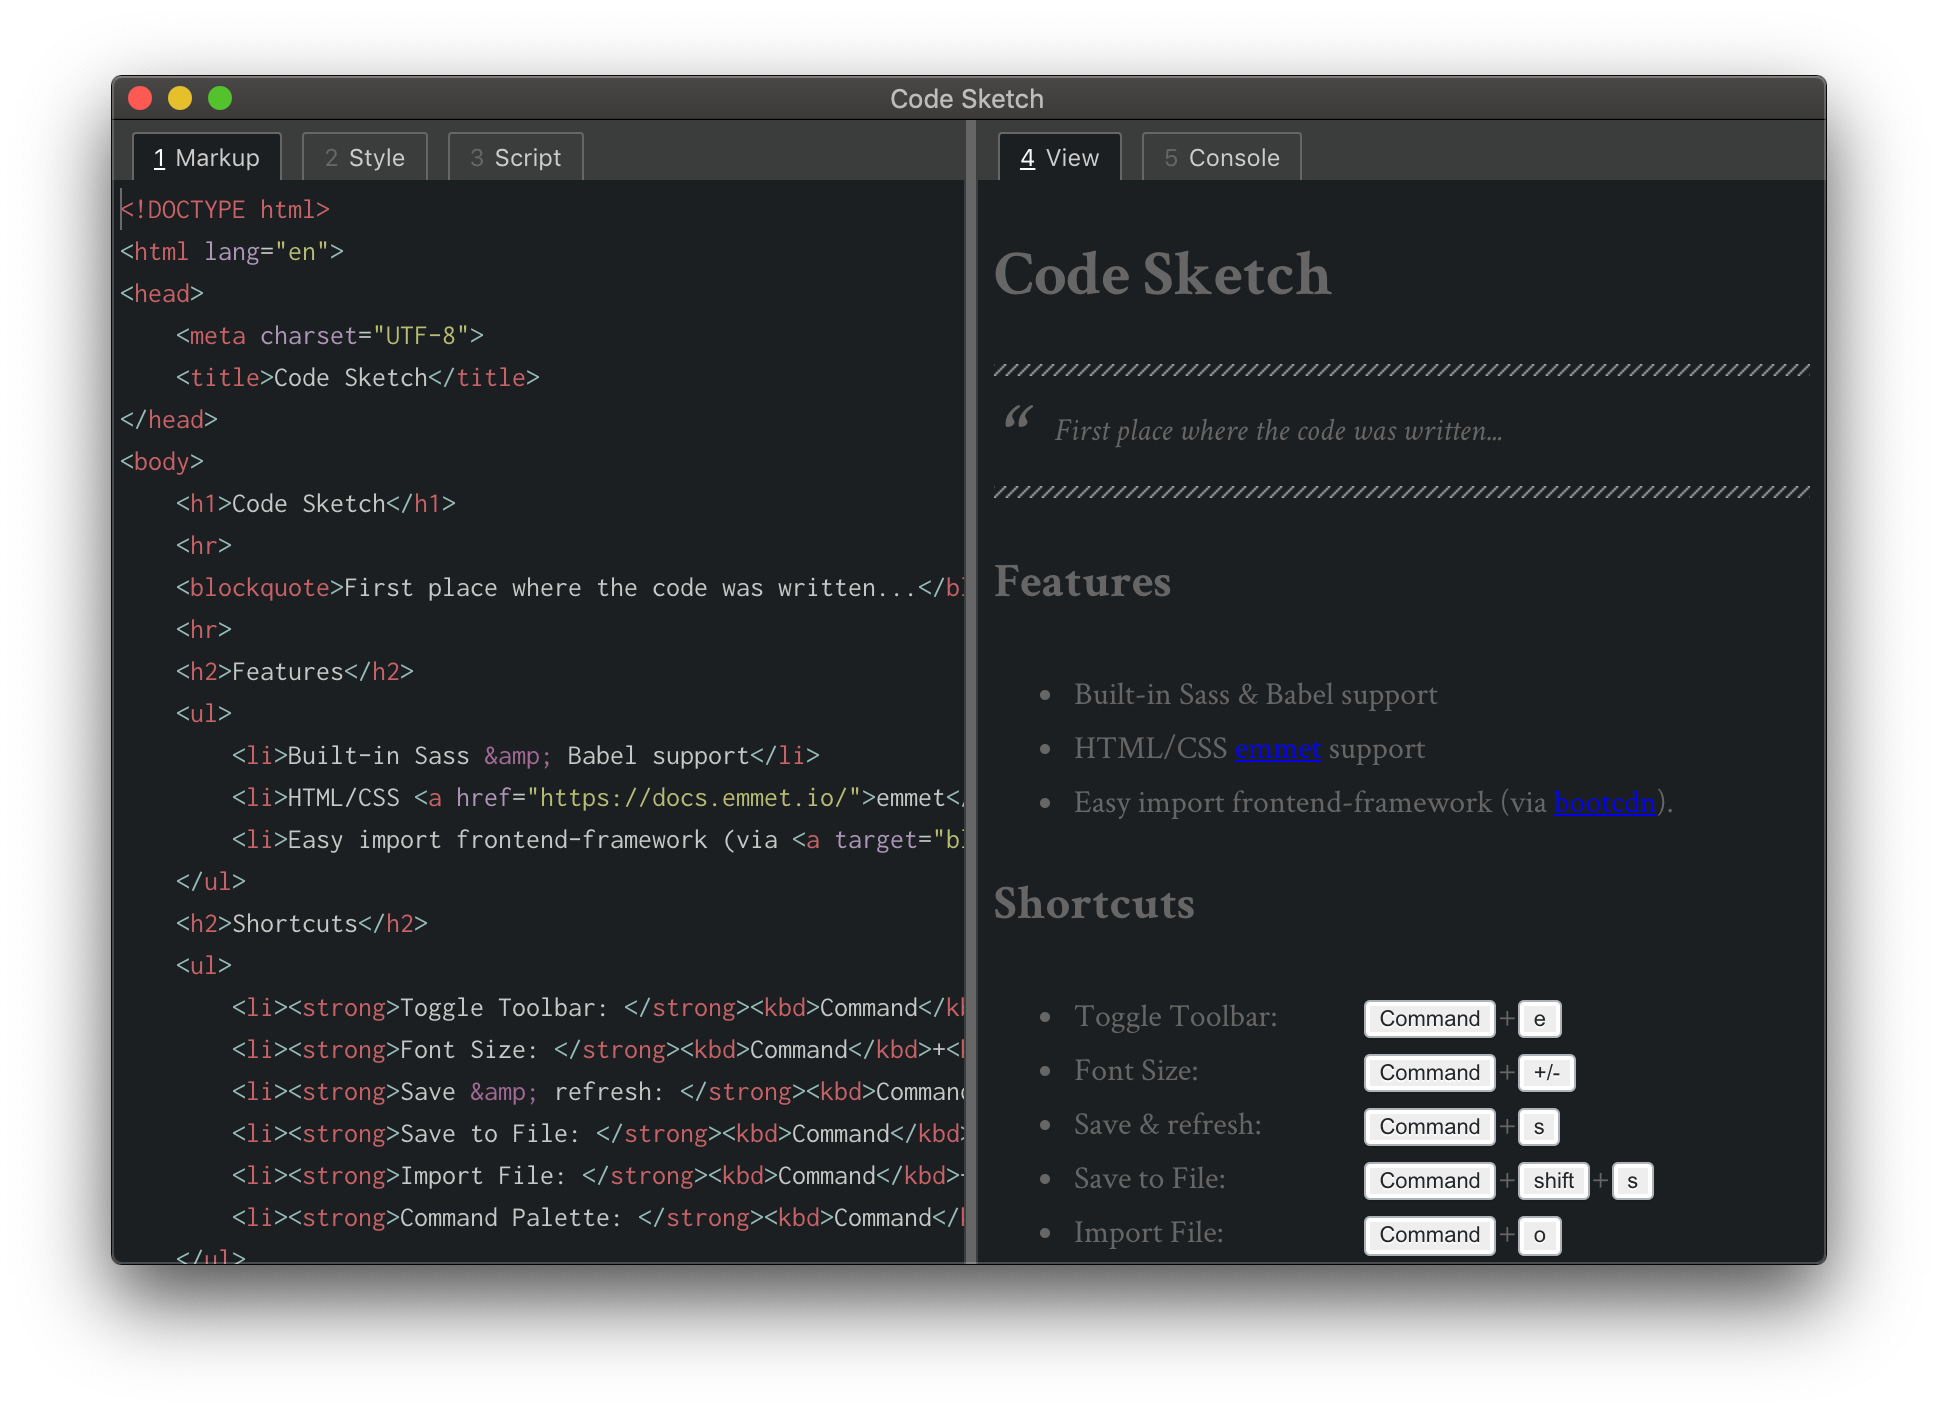 Code Sketch - A notepad for your code ideas 🛠️💡